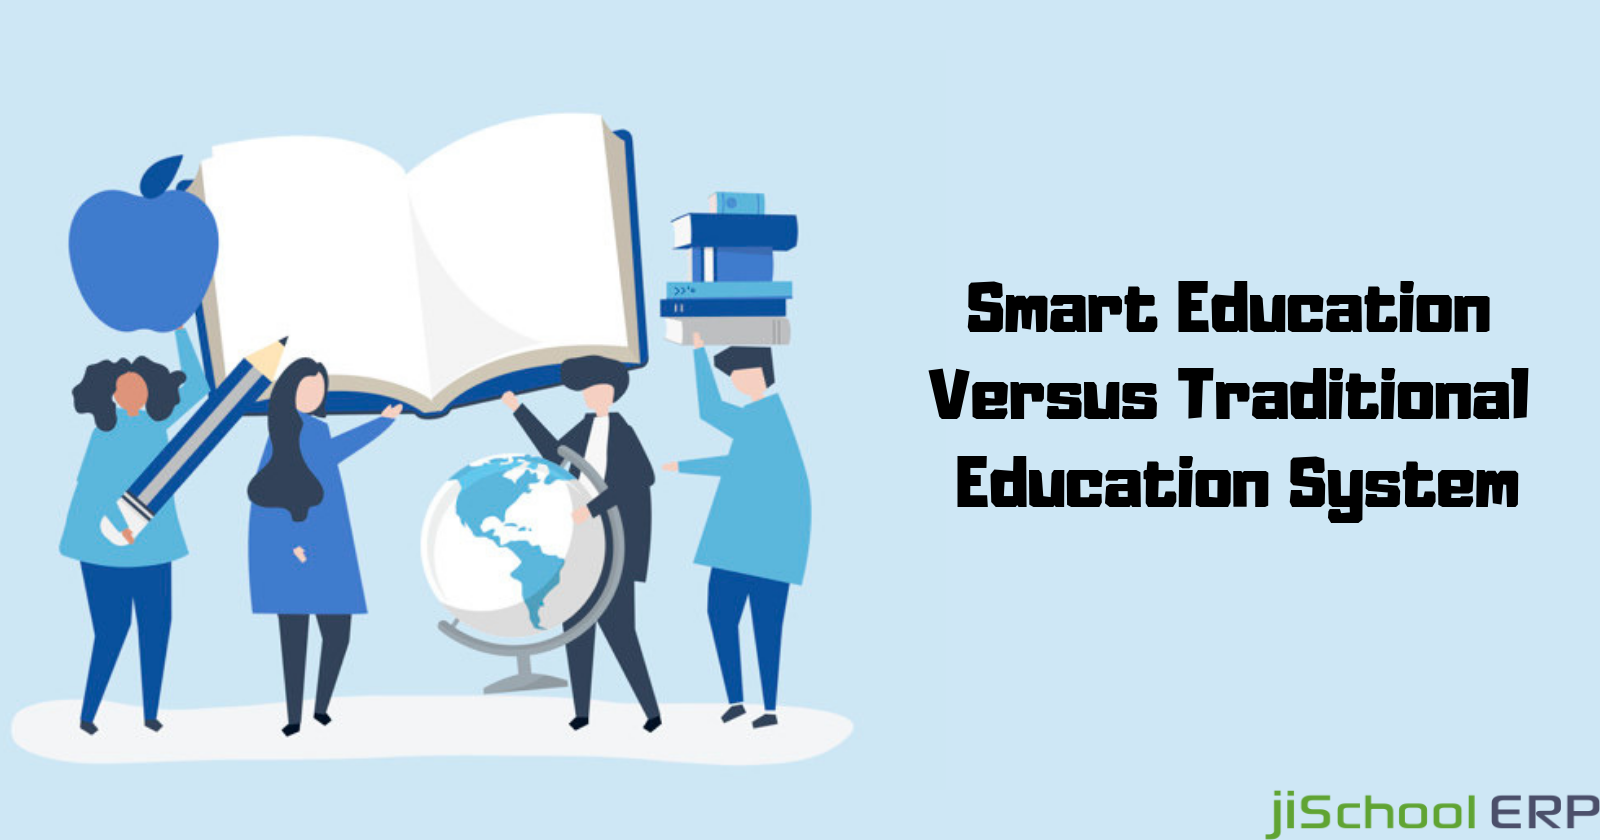 Smart Education Versus Traditional Education System